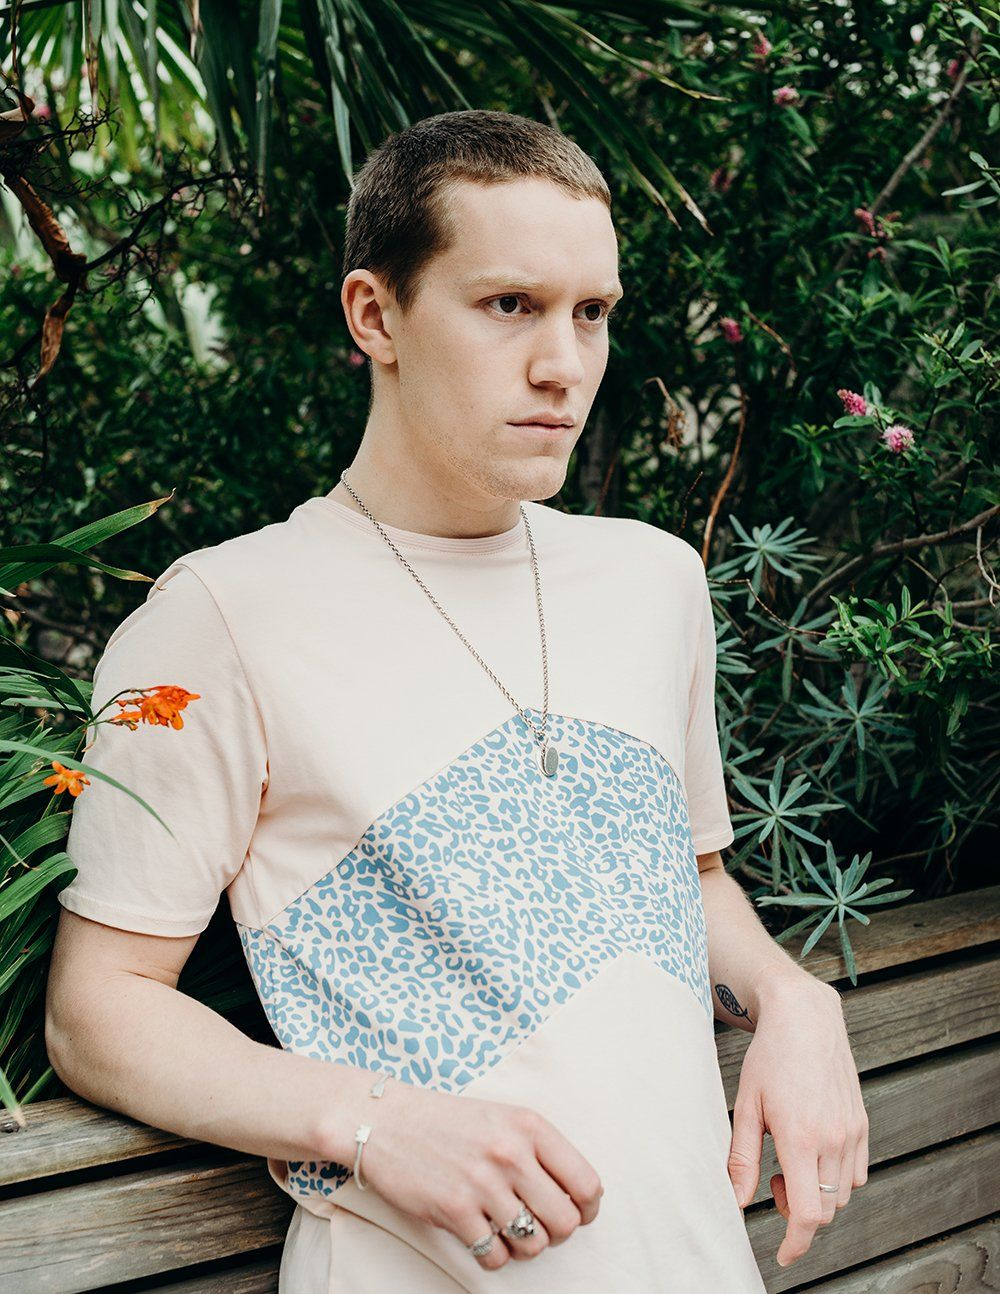 pink panel t shirt with blue printed panel handmade using organic cotton by ethical gender neutral streetwear fashion brand Androgyny UK